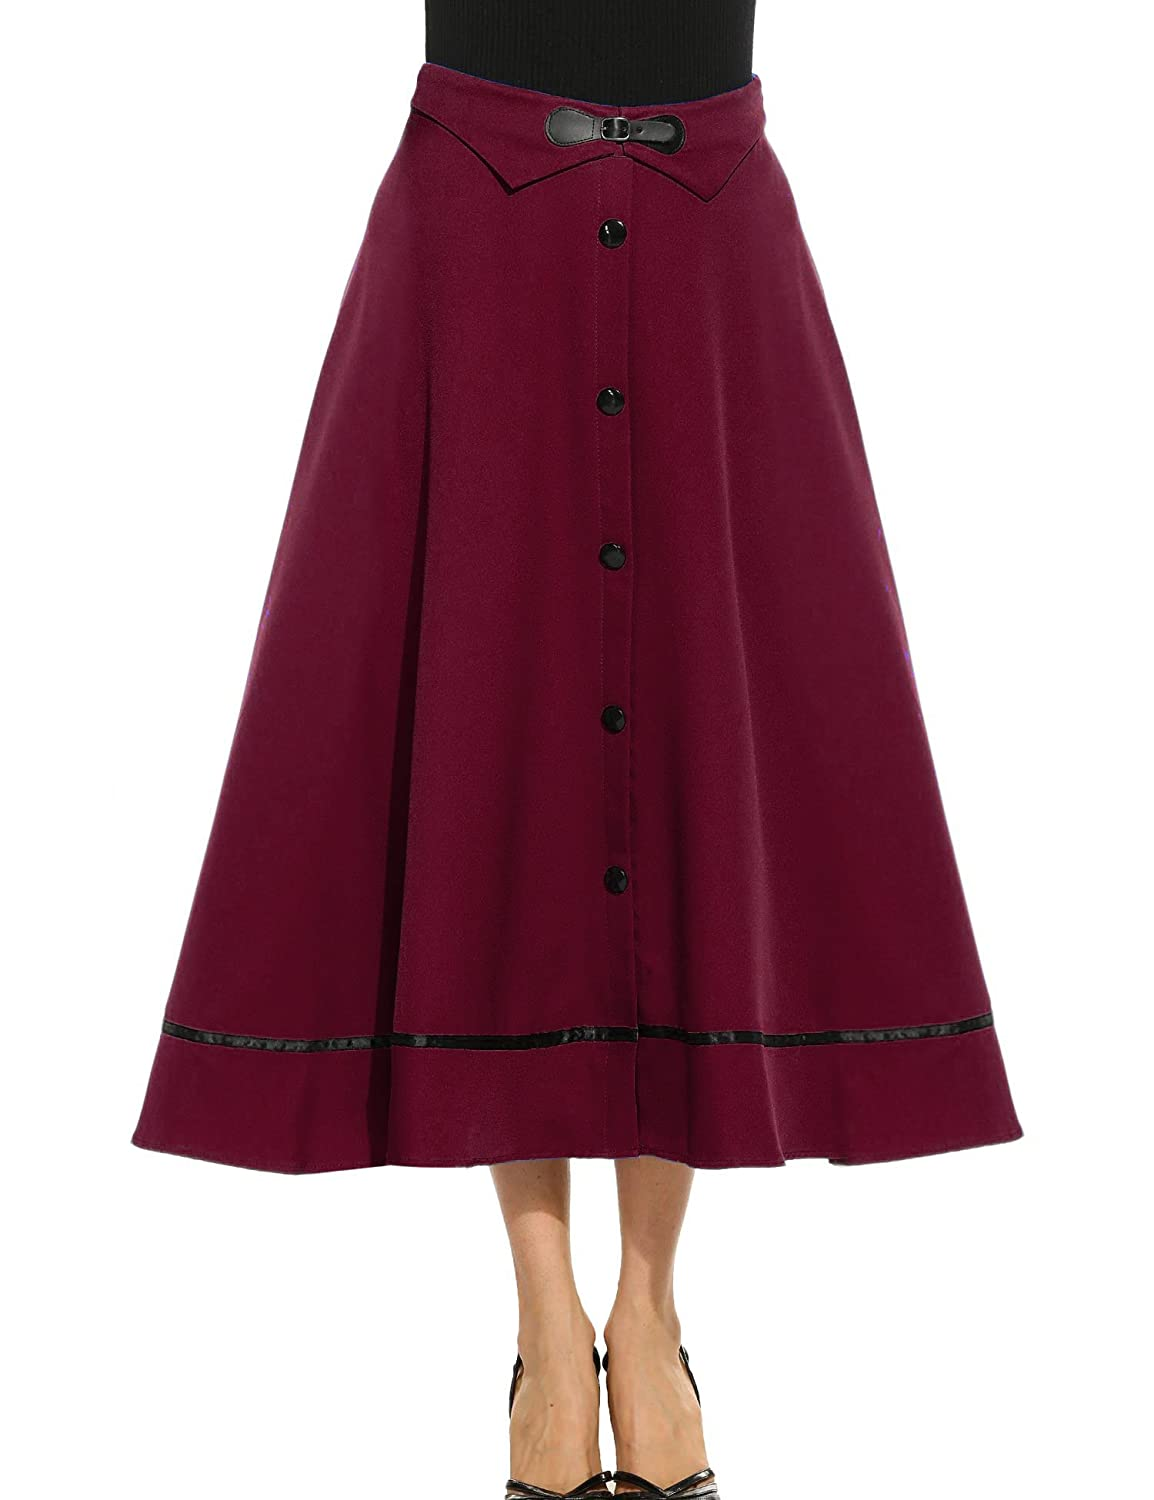 1950s Costumes- Poodle Skirts, Grease, Monroe, Pin Up, I Love Lucy ANGVNS Womens Vintage High Waist Button Down Pleated Swing Skirt $18.99 AT vintagedancer.com